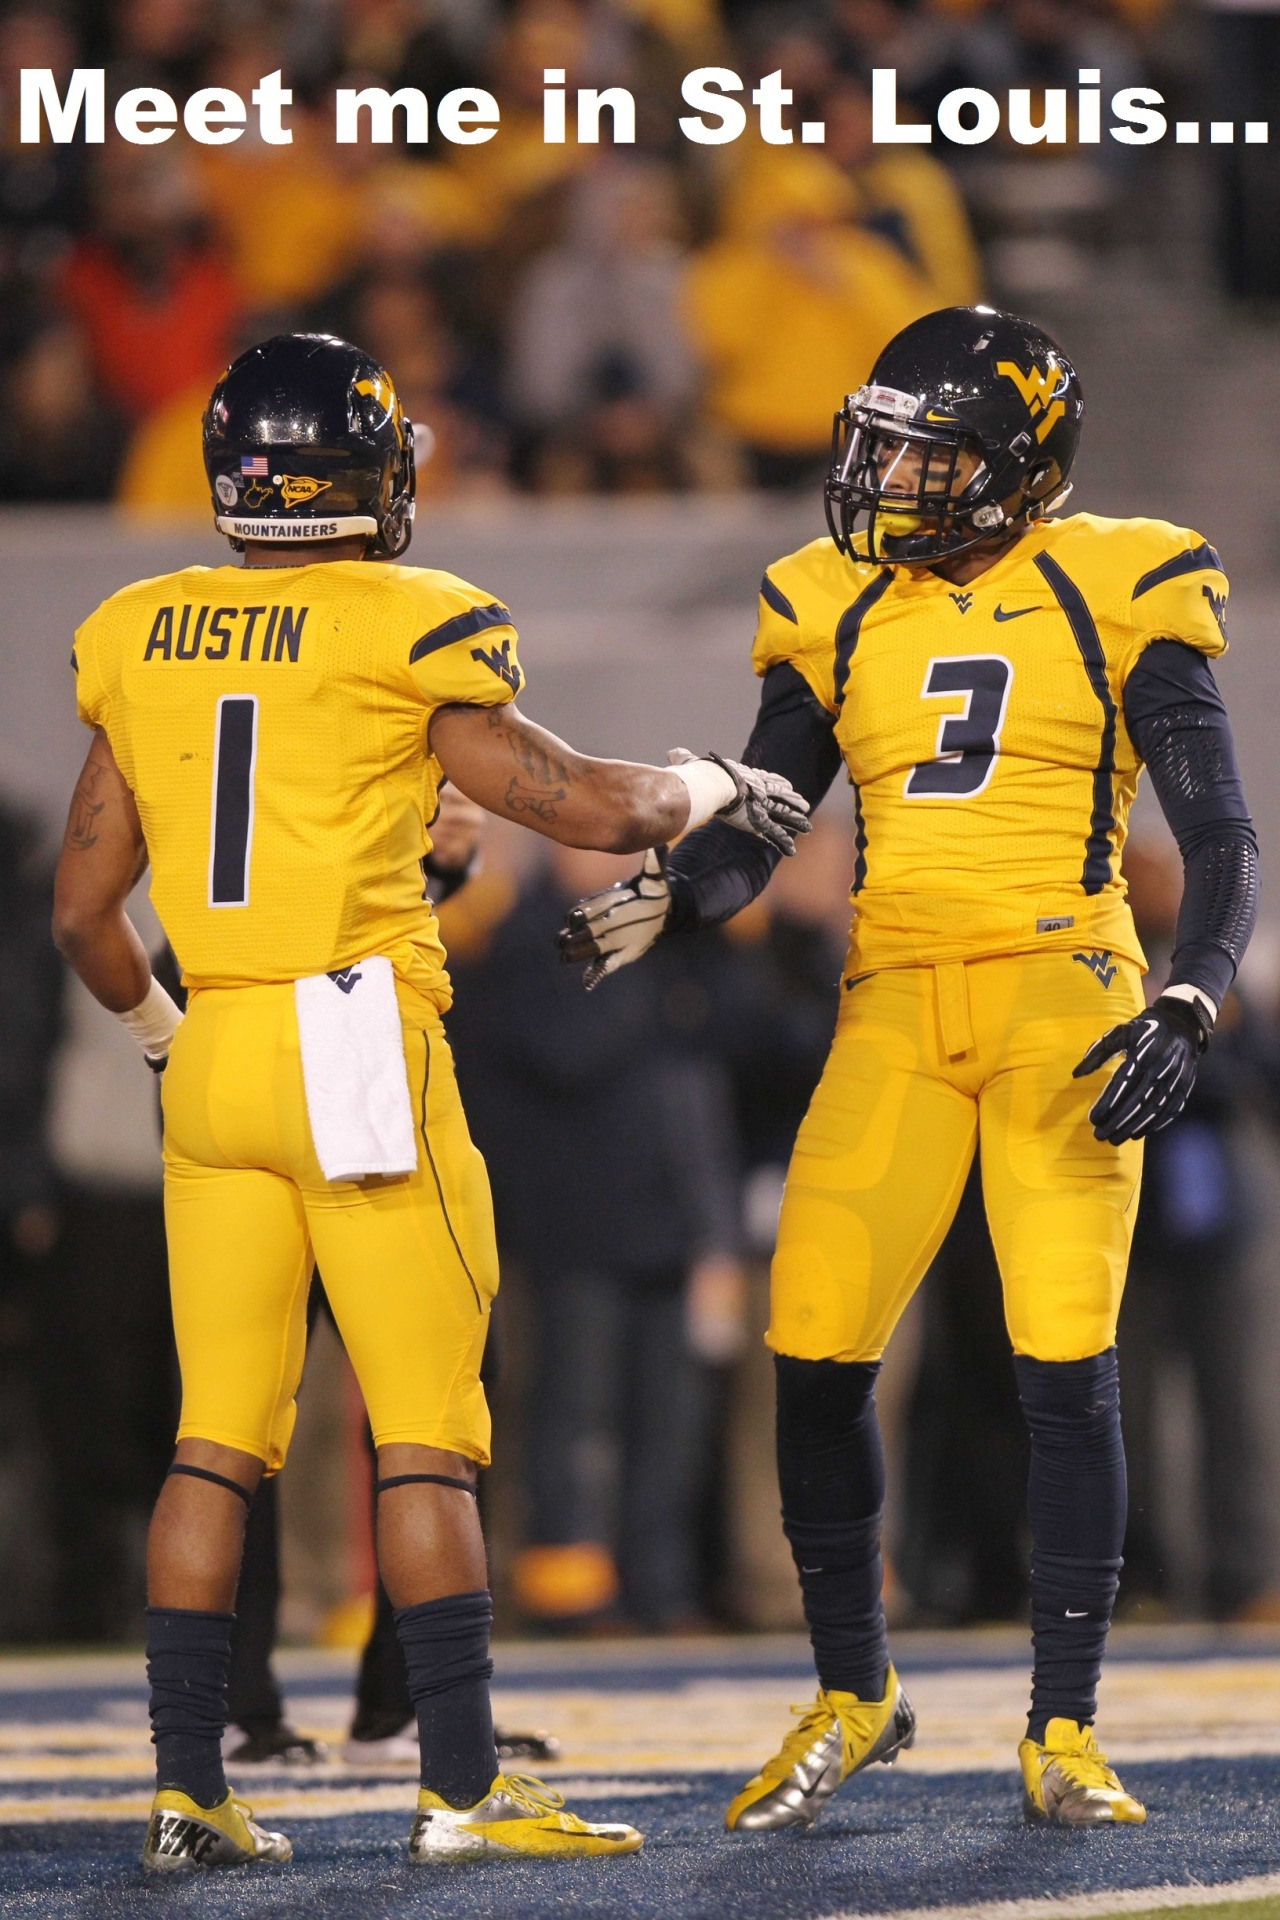 Teammates again!The Rams apparently like West Virginia wide receivers: Stedman Bailey goes to St. Louis at No. 92 overall, joining first-round pick Tavon Austin.